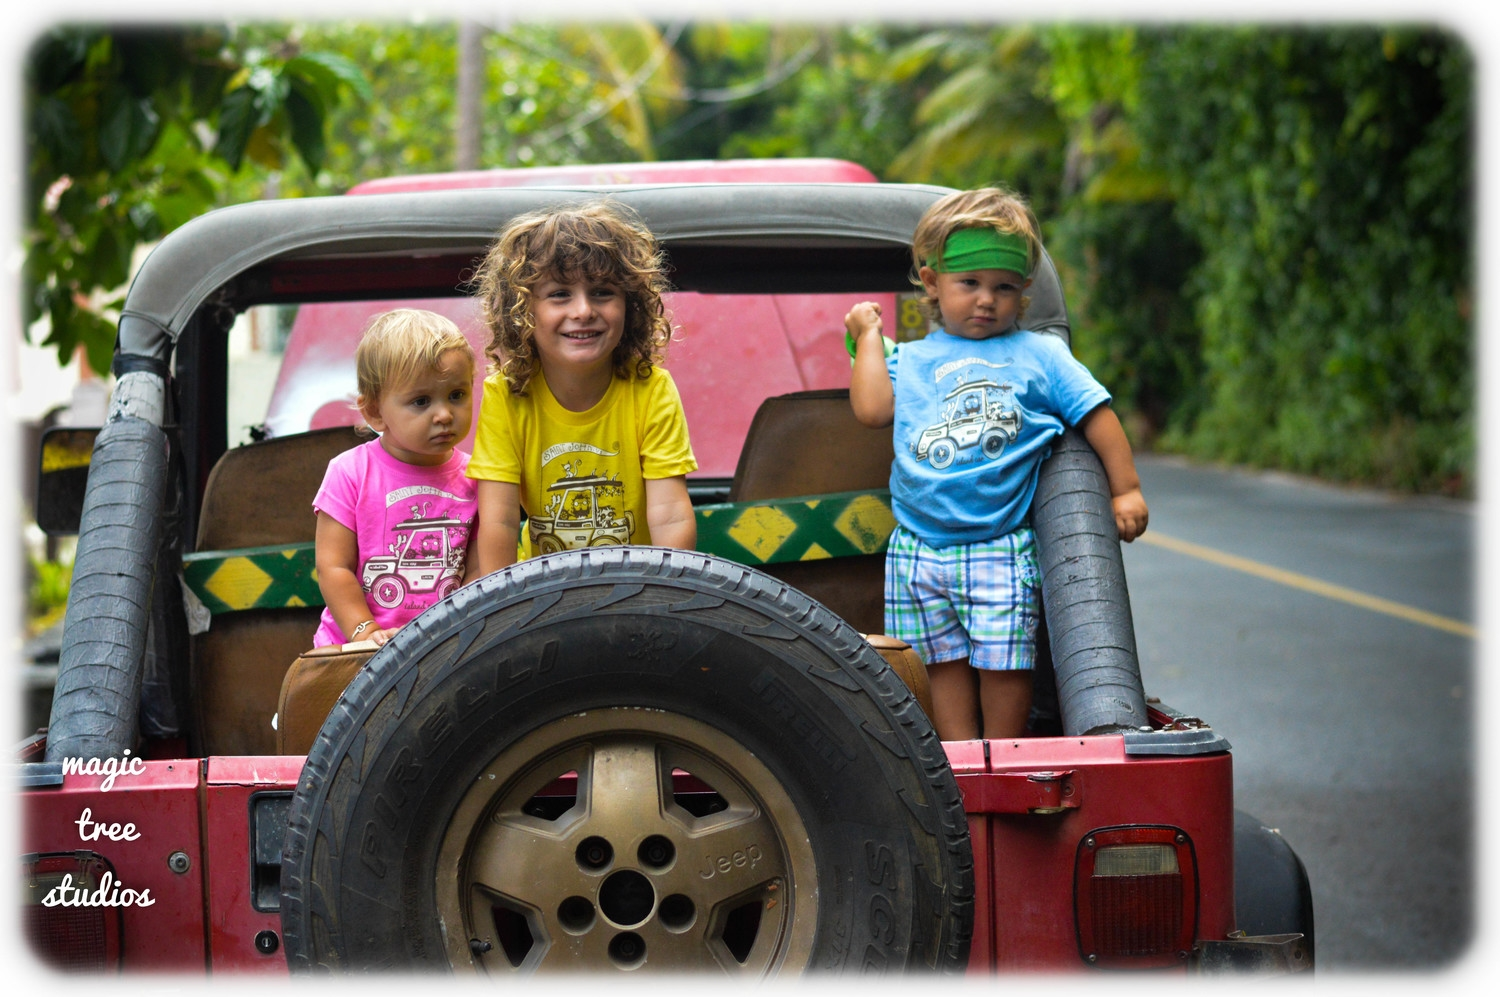 one day, a few friends decided to take daddy's island jeep out for a joy ride